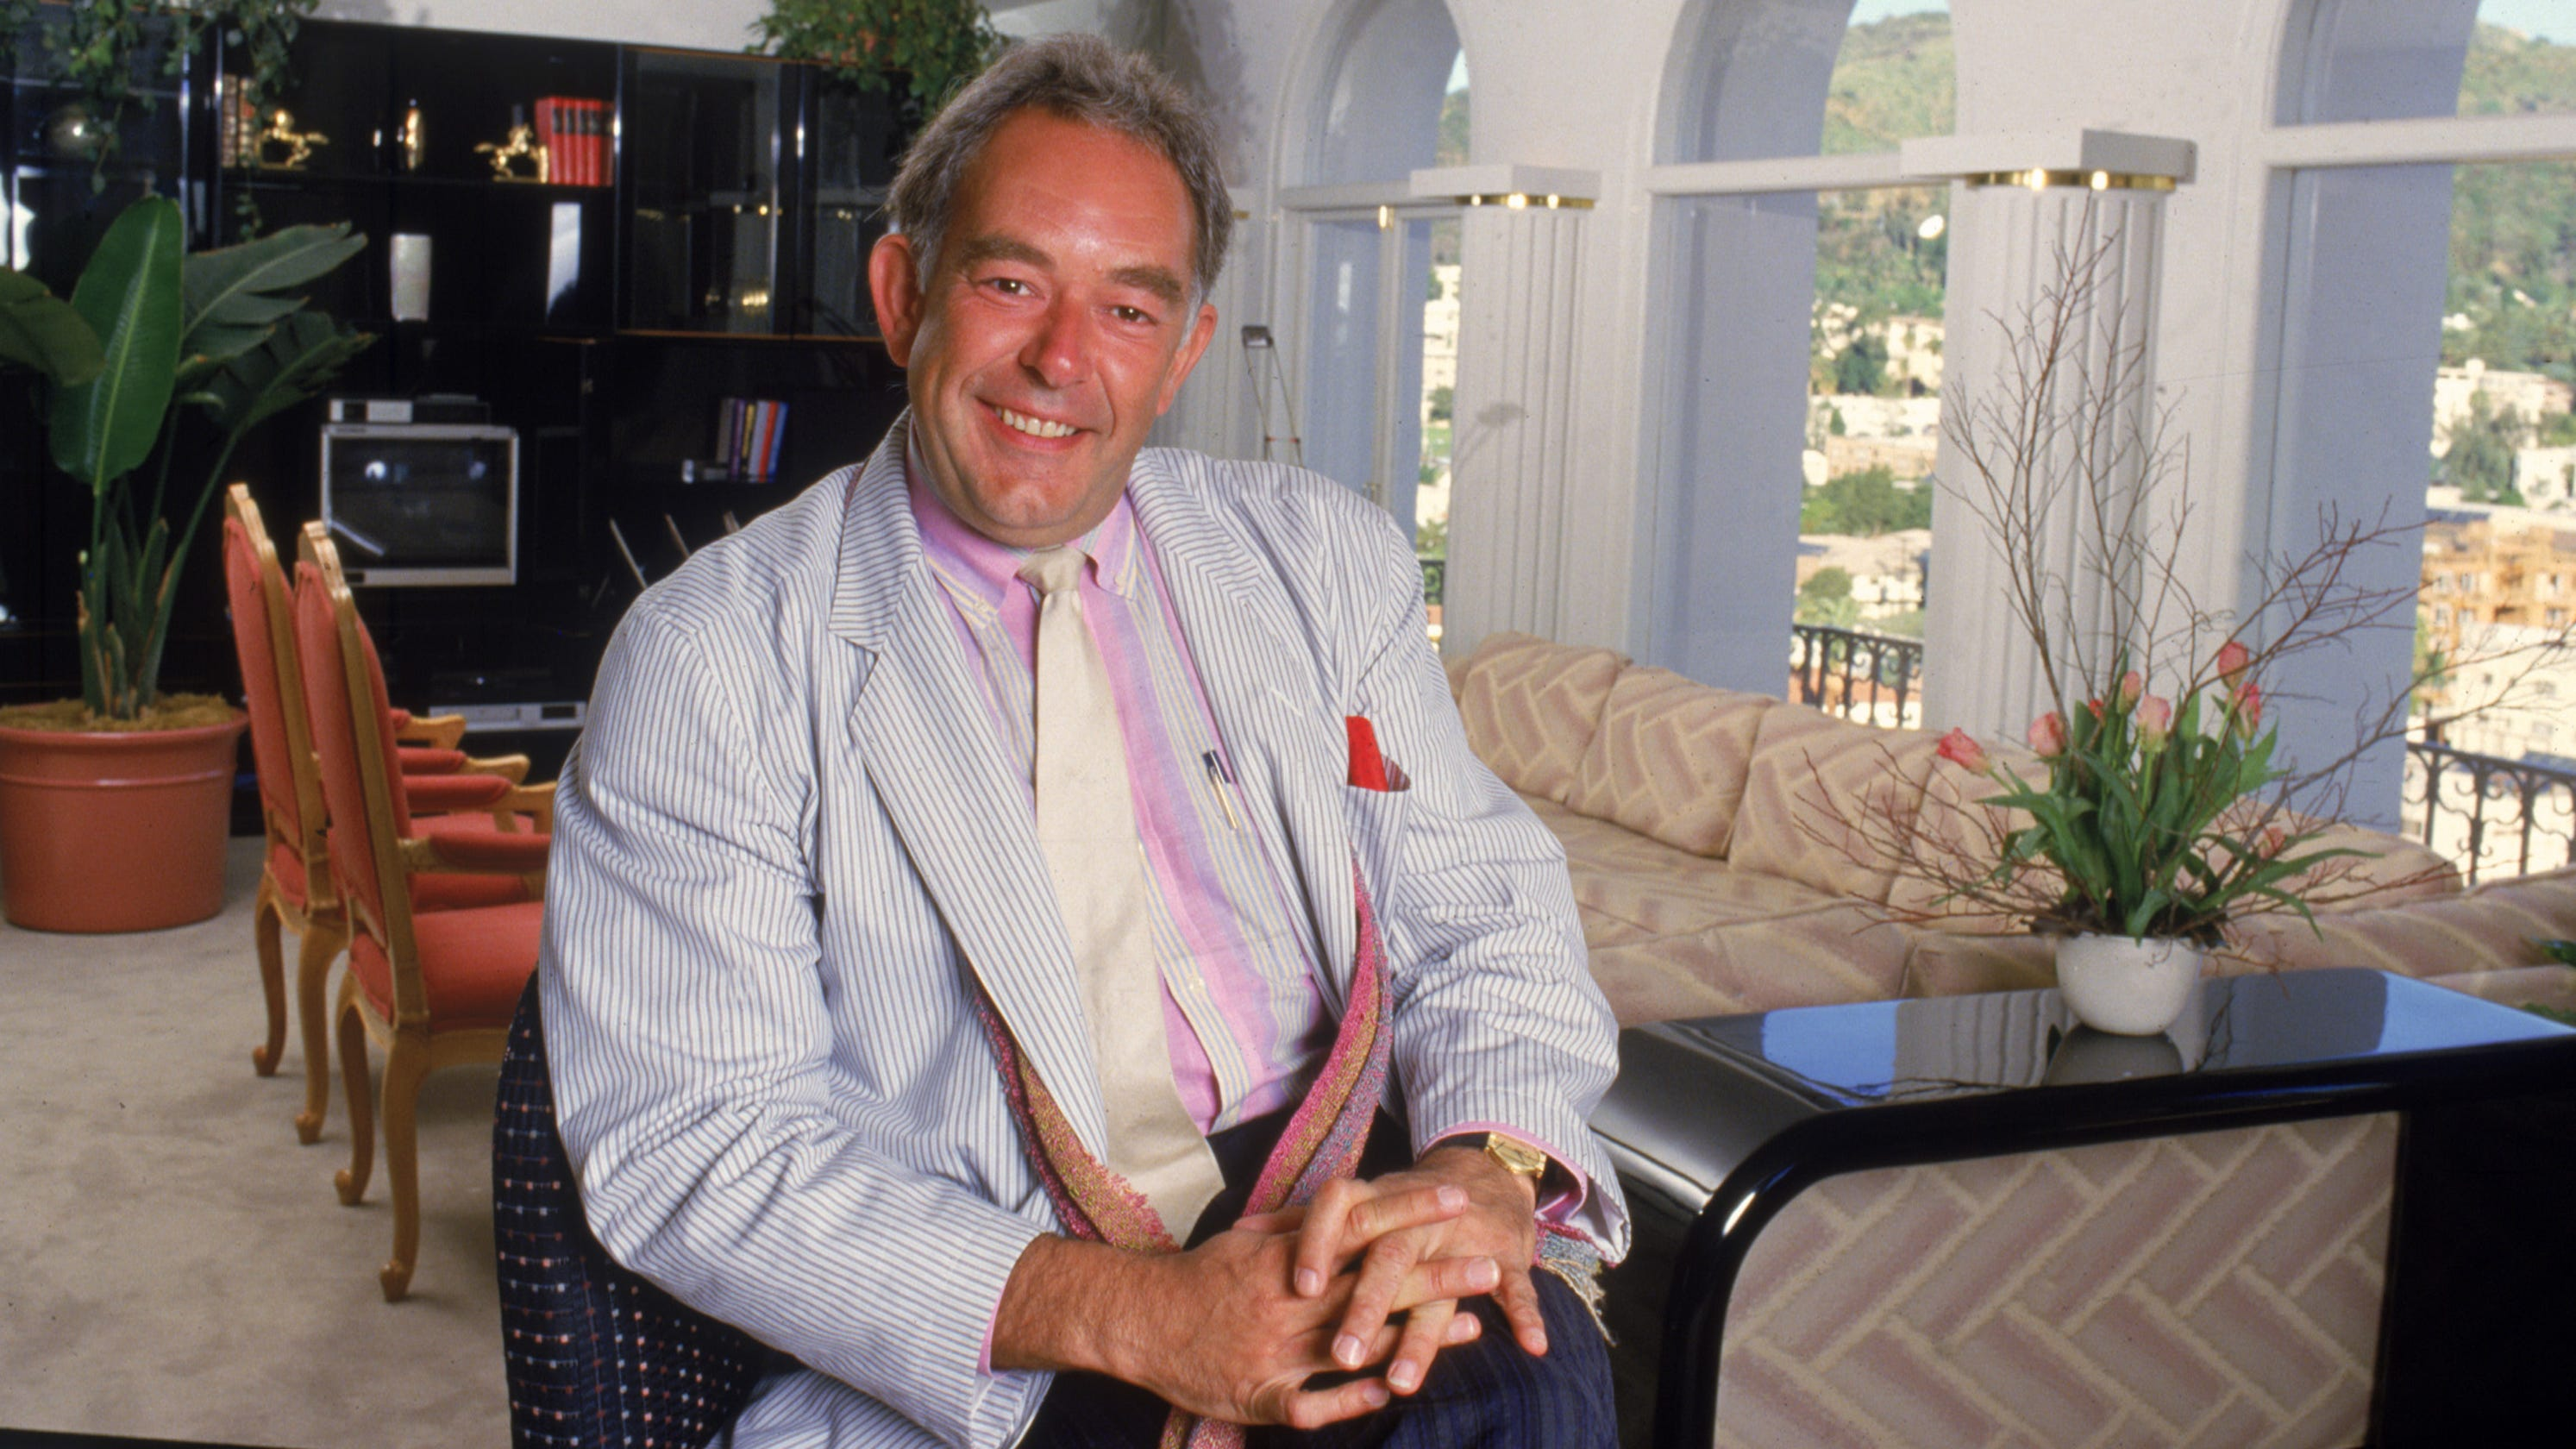 Reports: Robin Leach, chronicler of 'Lifestyles of the Rich and Famous,' has died at 76